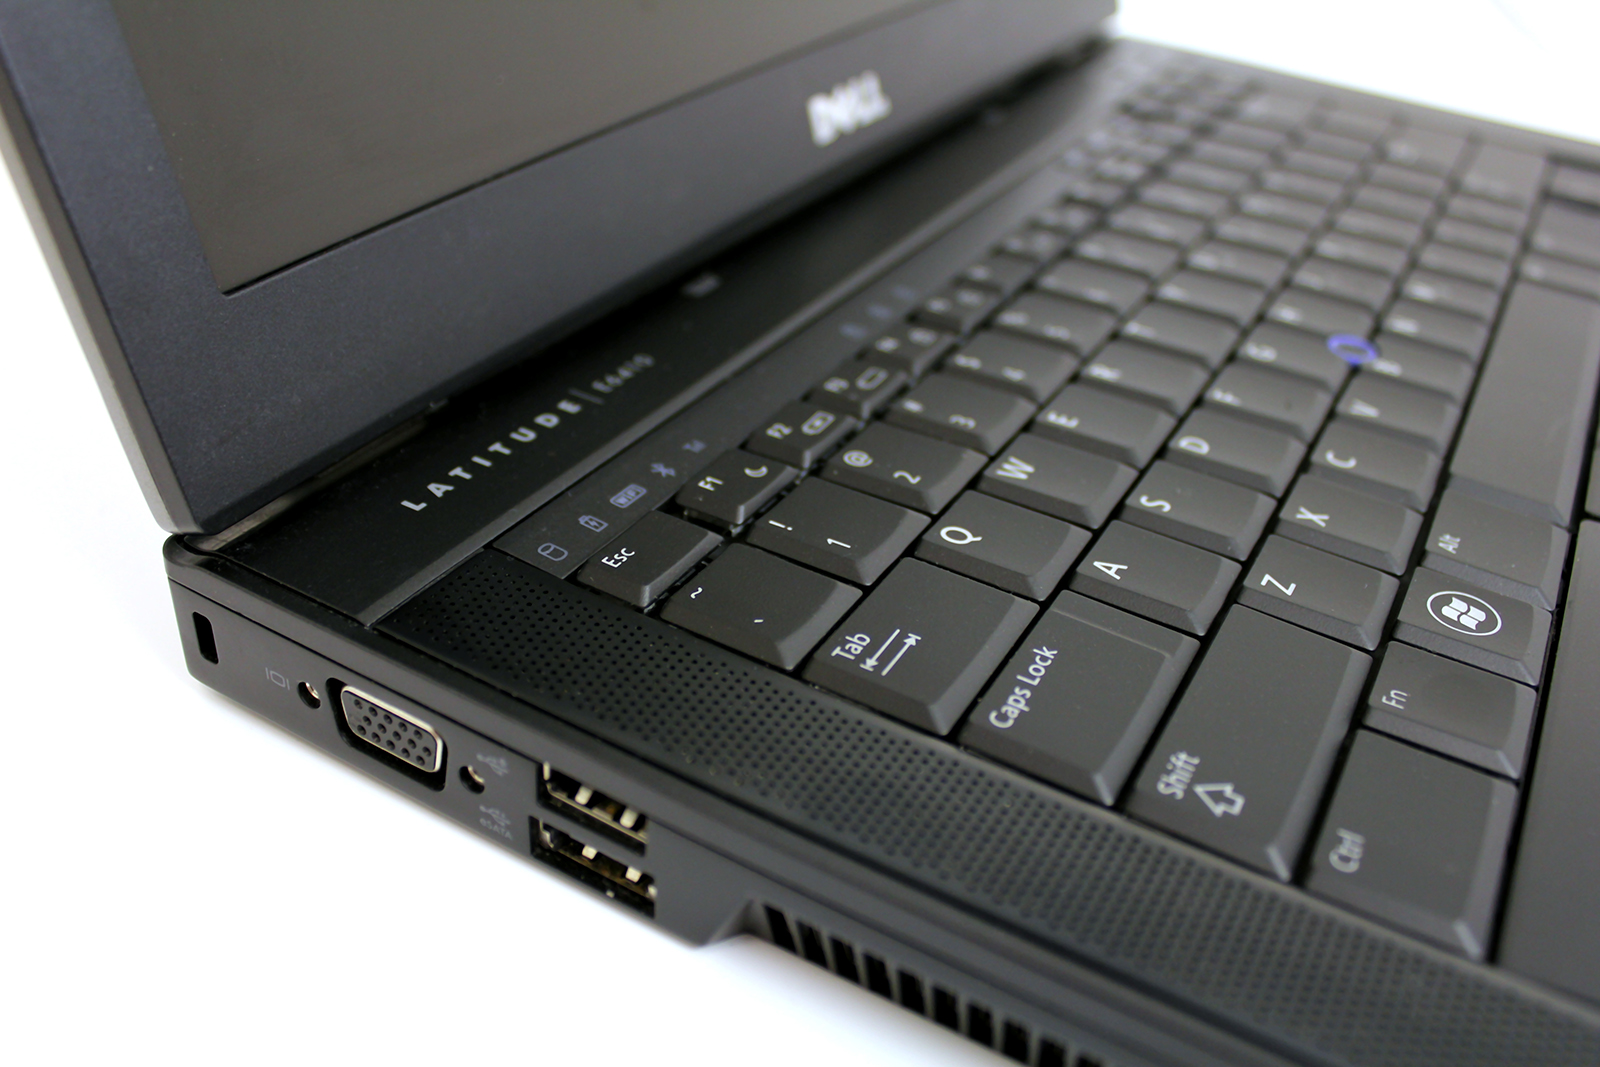 dell laptop latitude e6410 manual